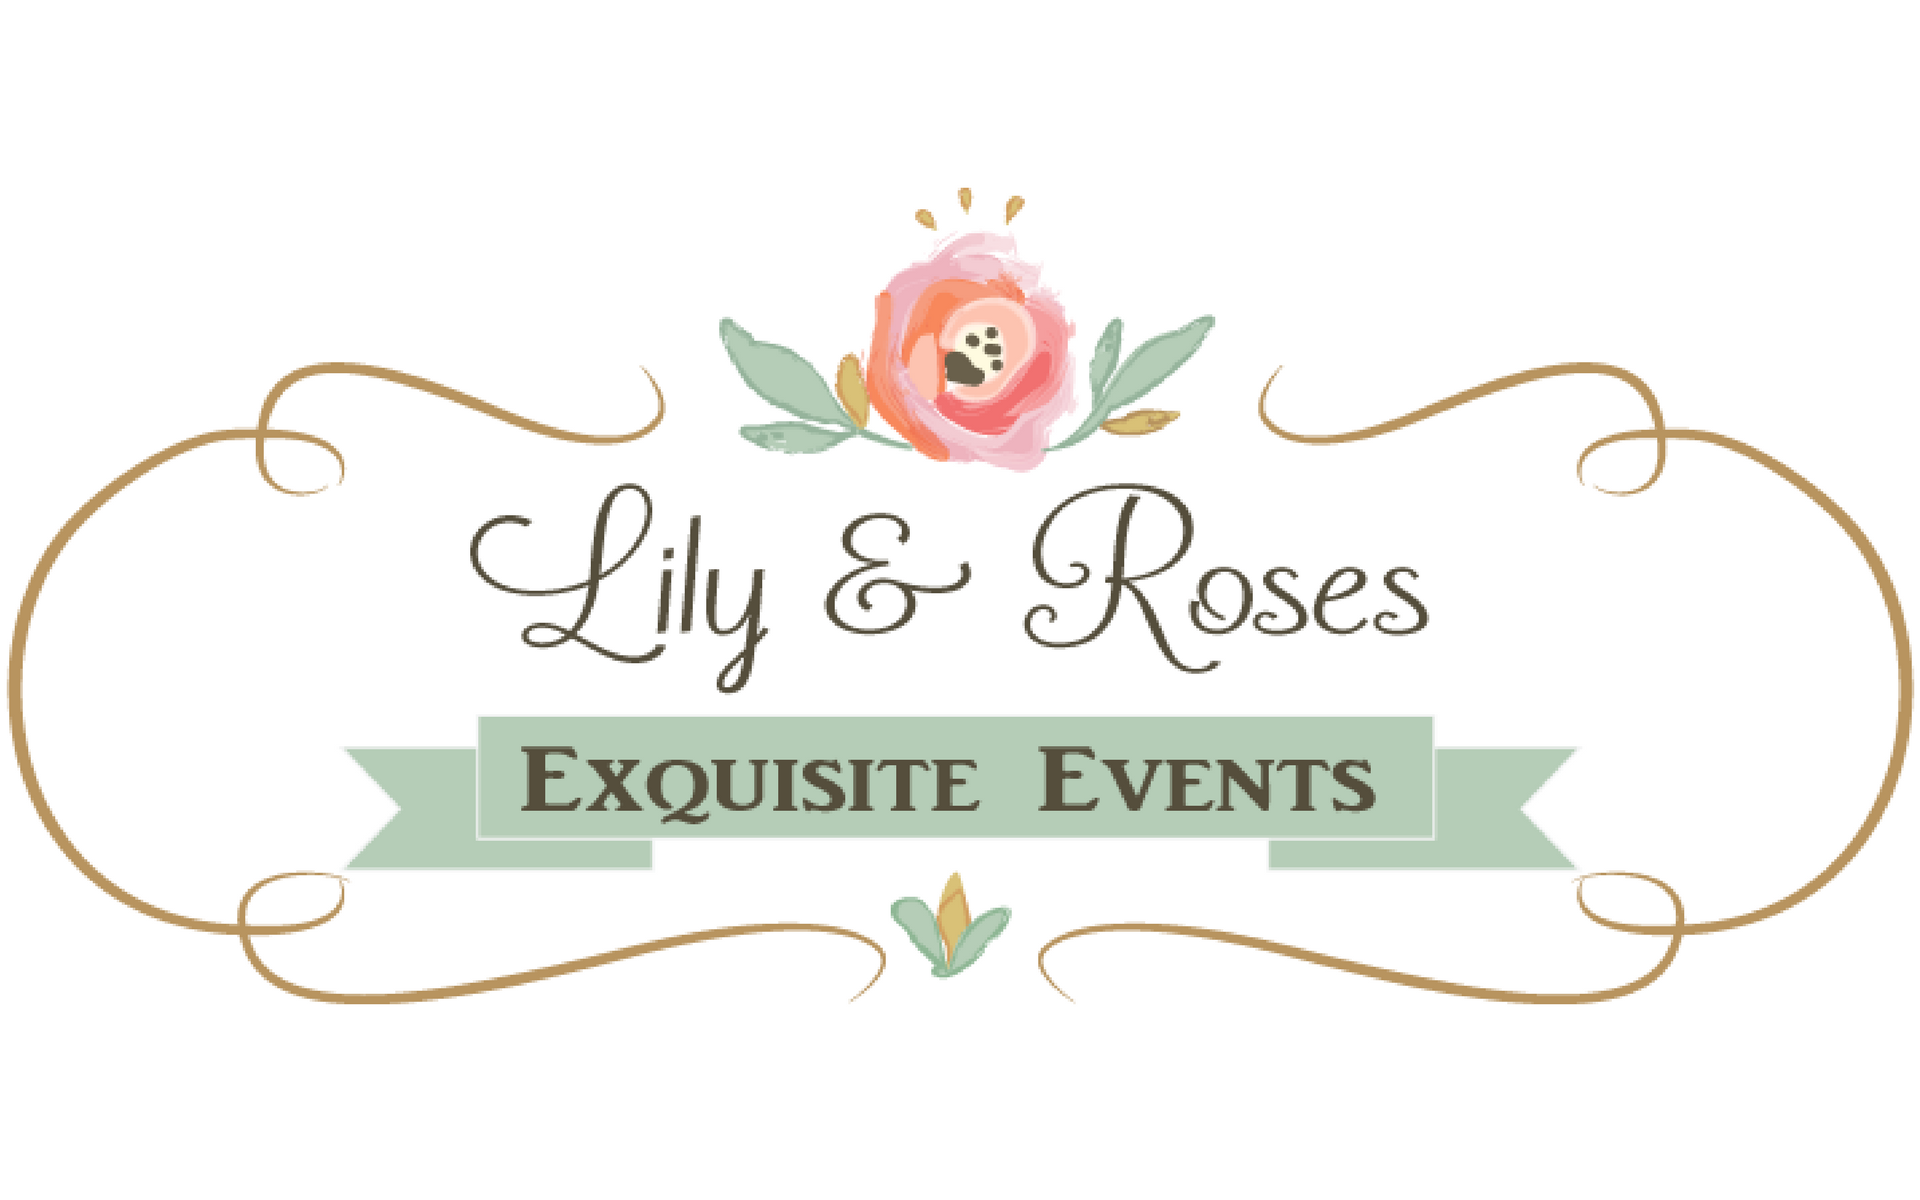 Lily & Roses events montreal